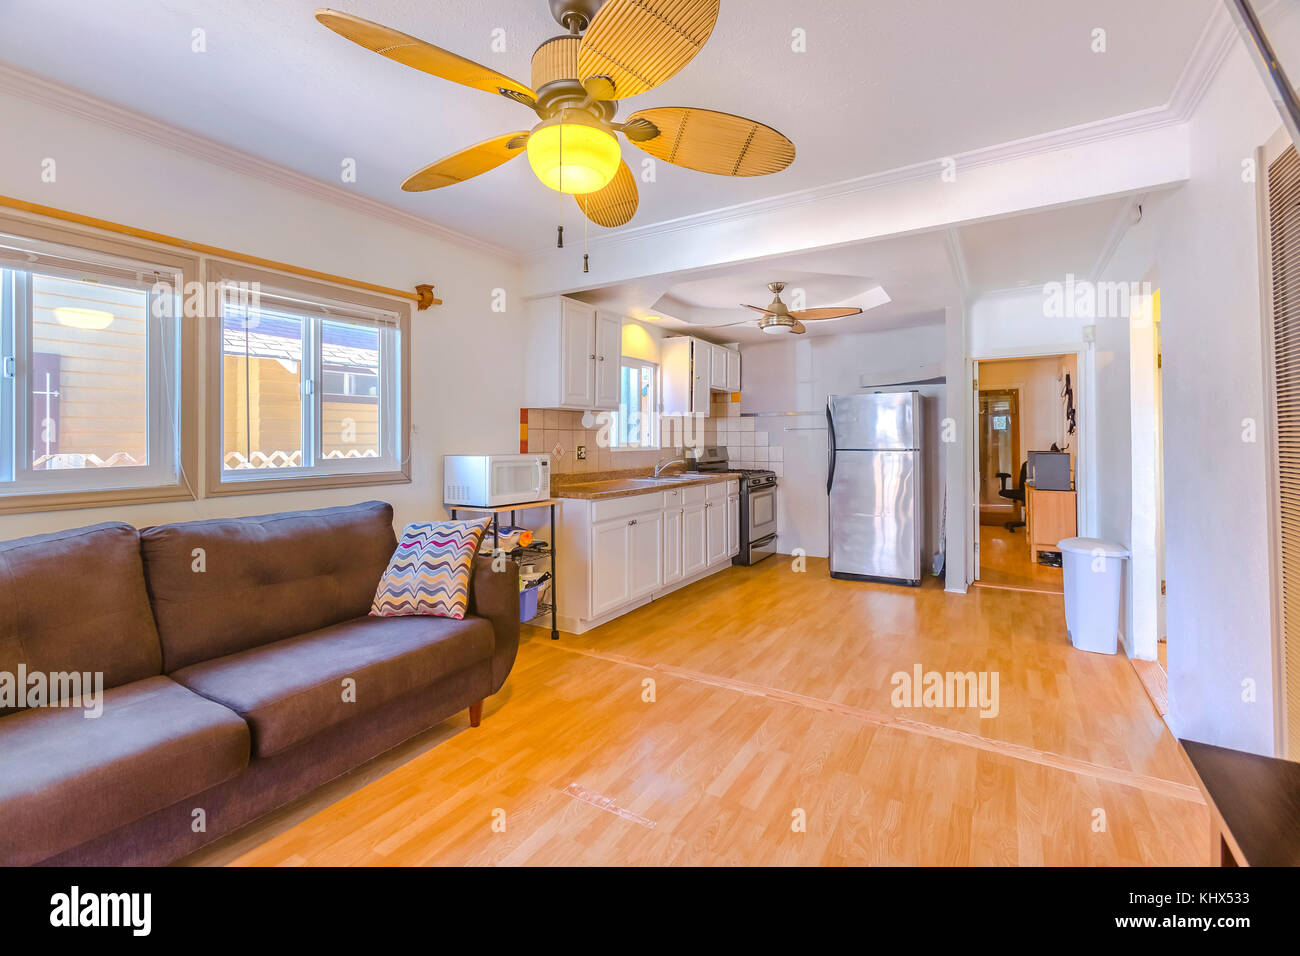 Living Room With Bamboo Flooring And Paneled Ceiling Fan. Wonderful  California Home In San Diego County. Real Estate Listings With Powerful  Visuals